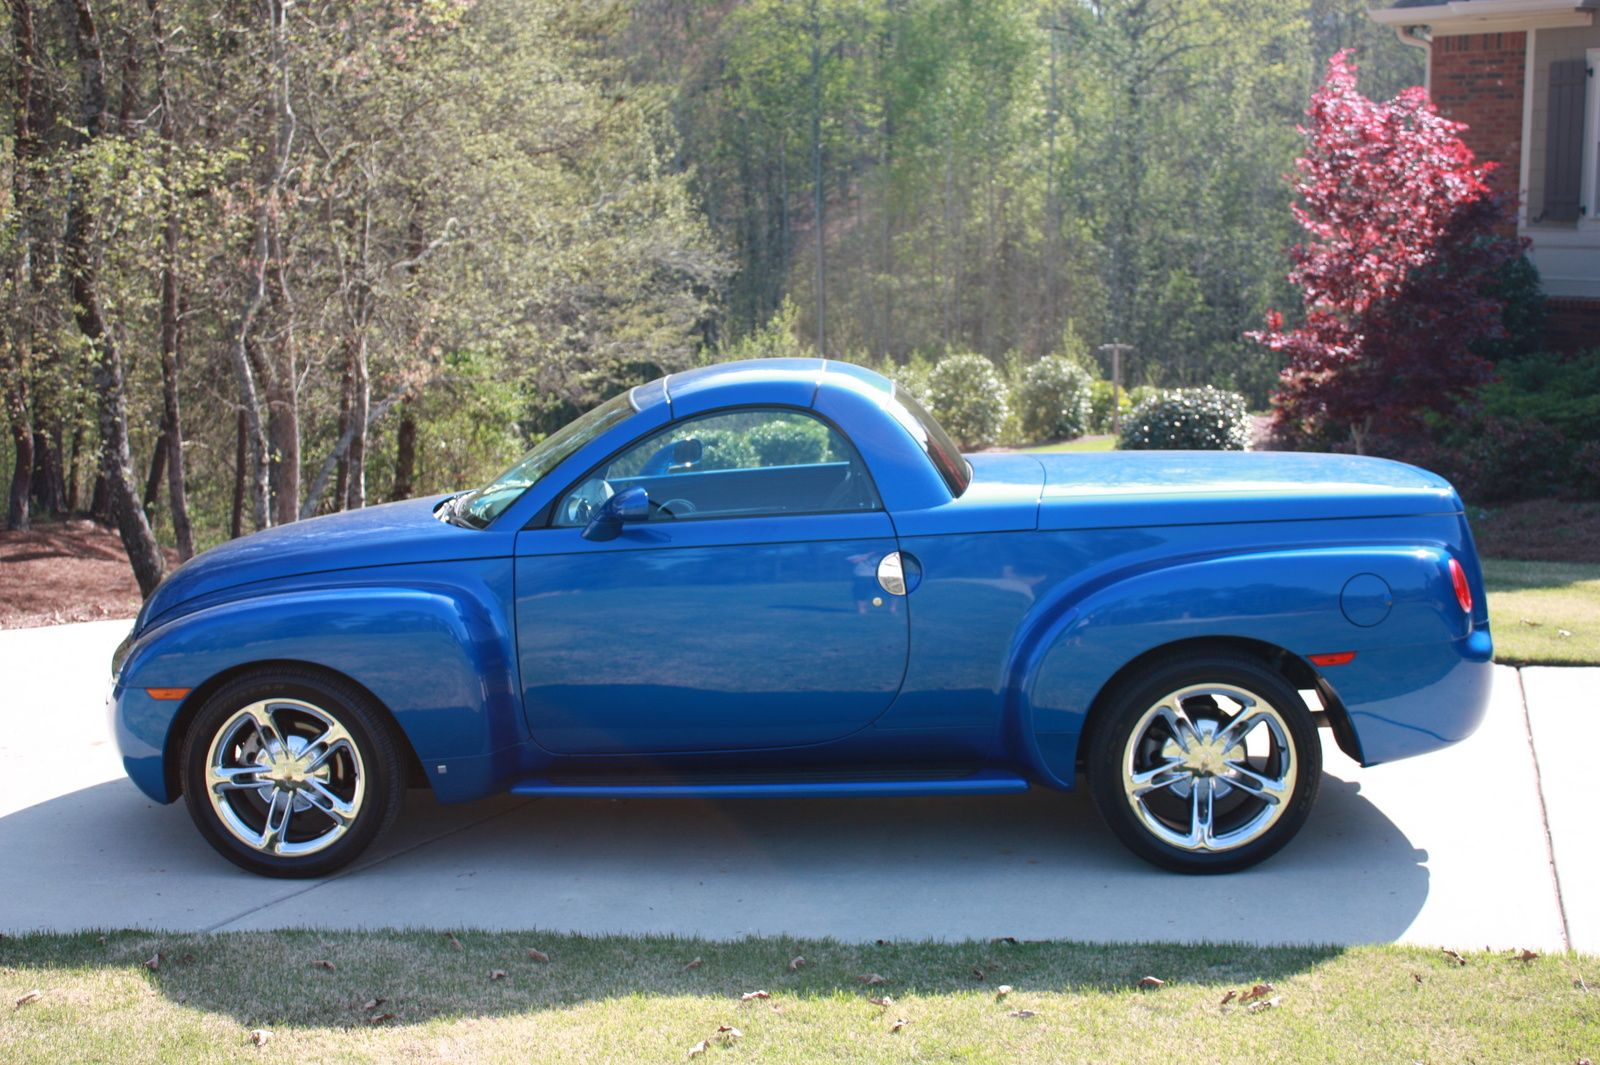 2006 Chevrolet Ssr 2dr Regular Cab Convertible Sb Trucks